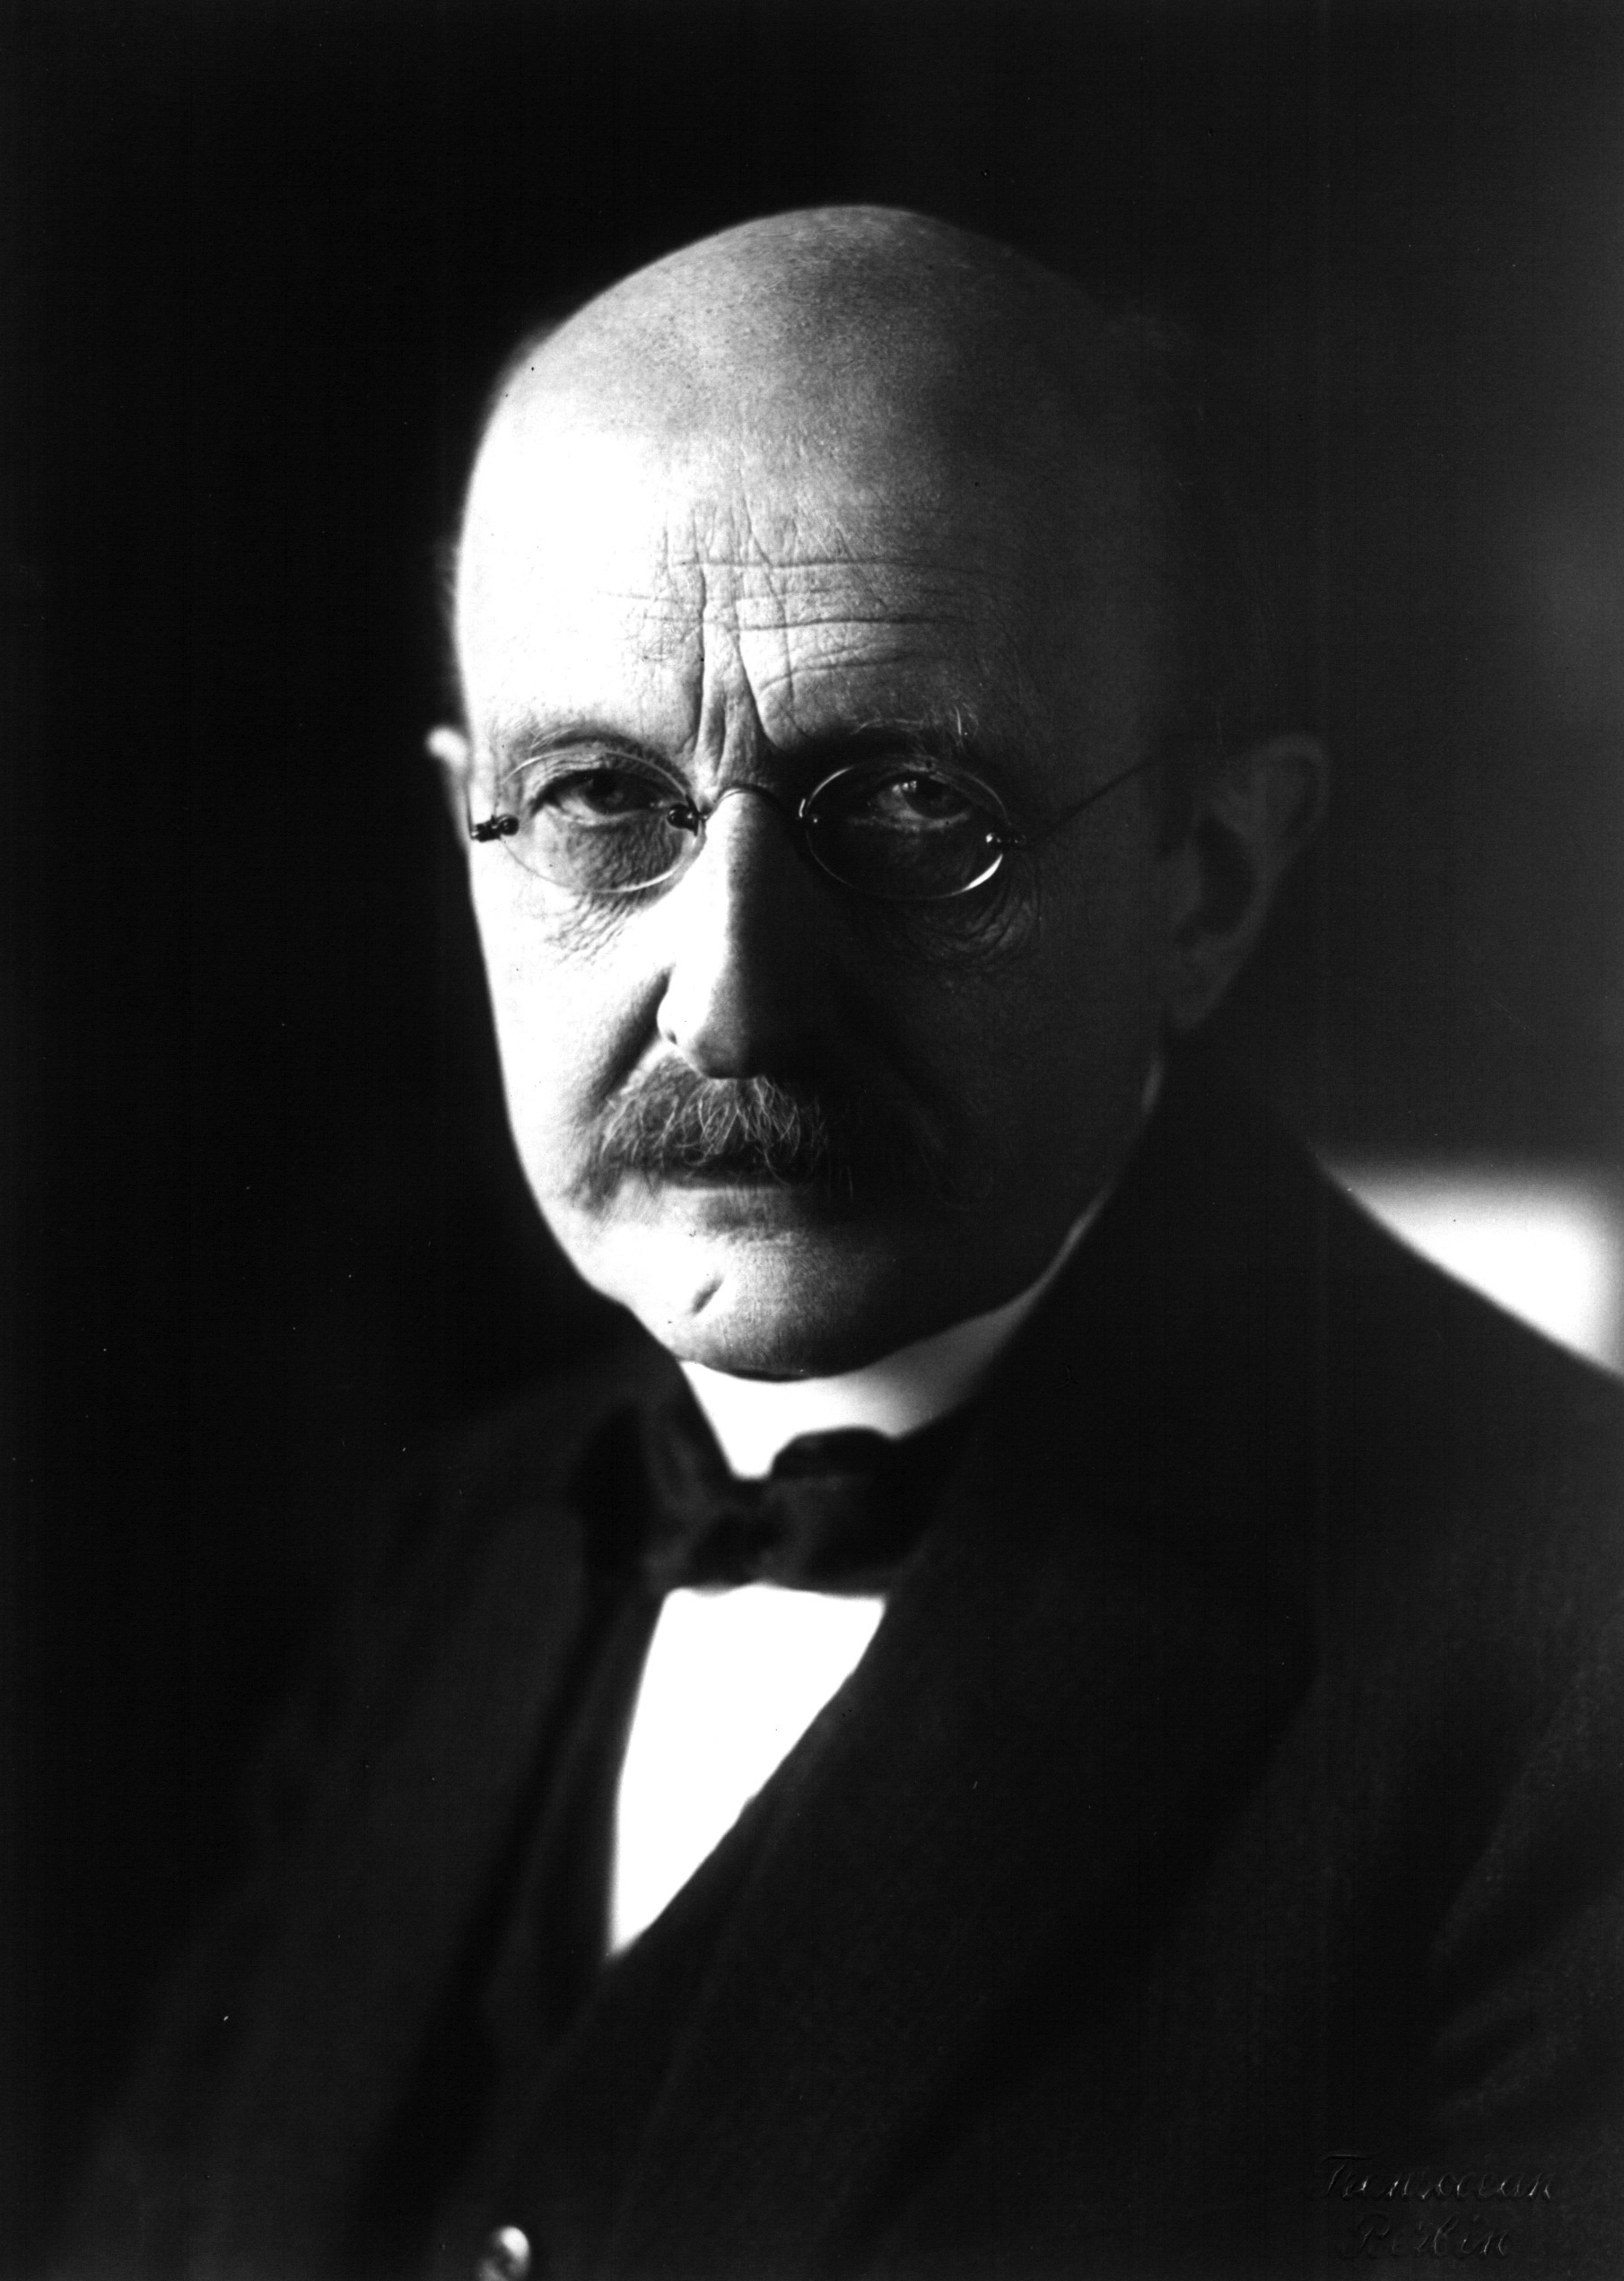 Max Planck - Unknown author and photo is older than 70 years (taken in 1930)